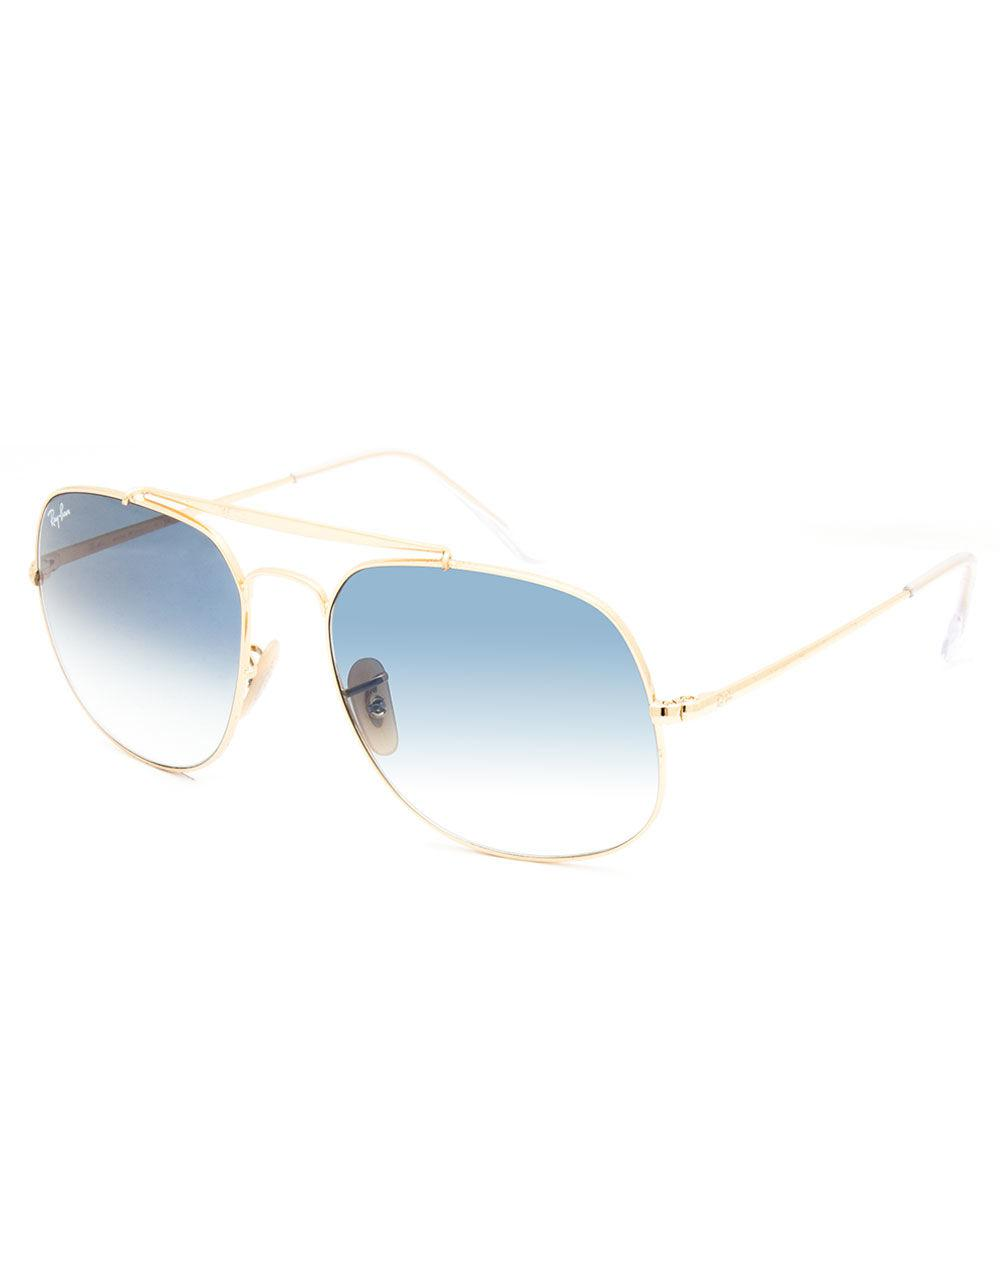 a3132c87e2949 Lyst - Ray-Ban General Sunglasses in Metallic for Men